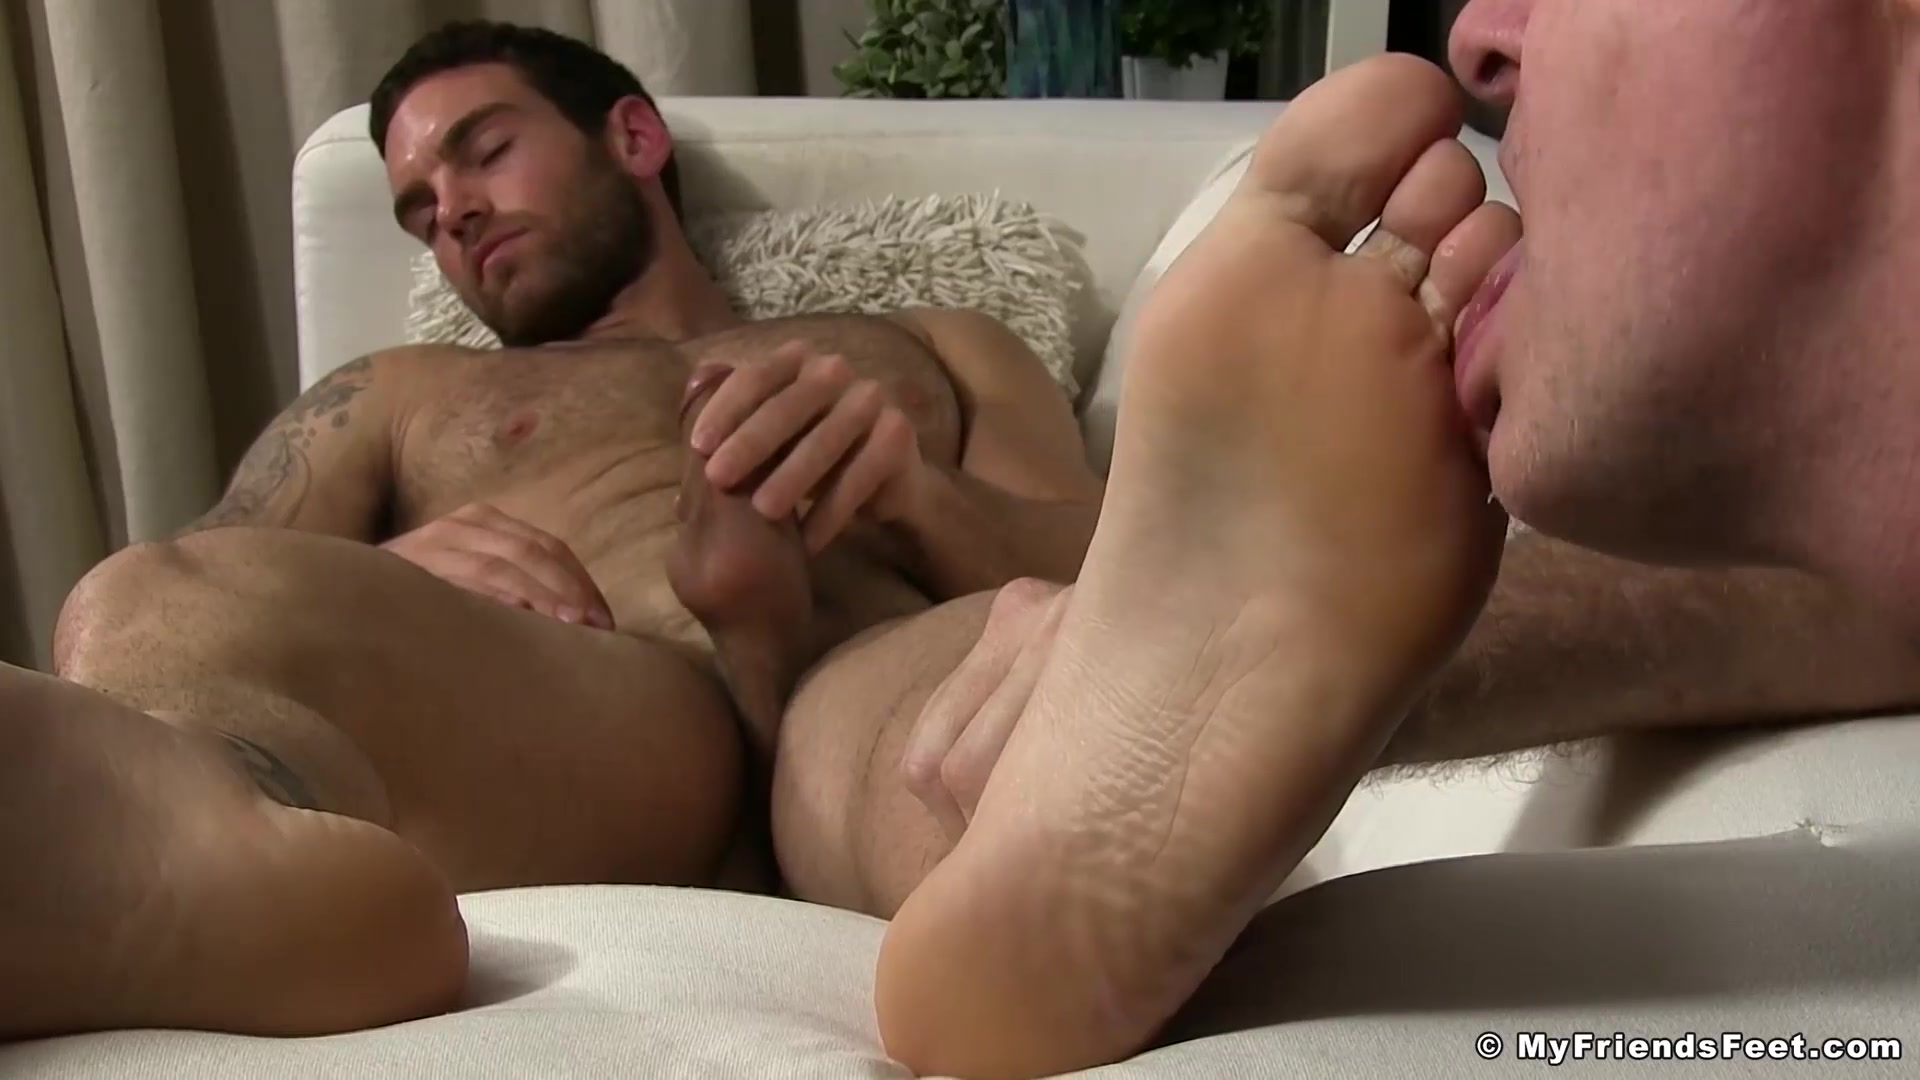 Chase Lachance in Muscle dude Chase Lachance gets feet licked and worshiped - MyFriendsFeet When to stop dating a christian guy